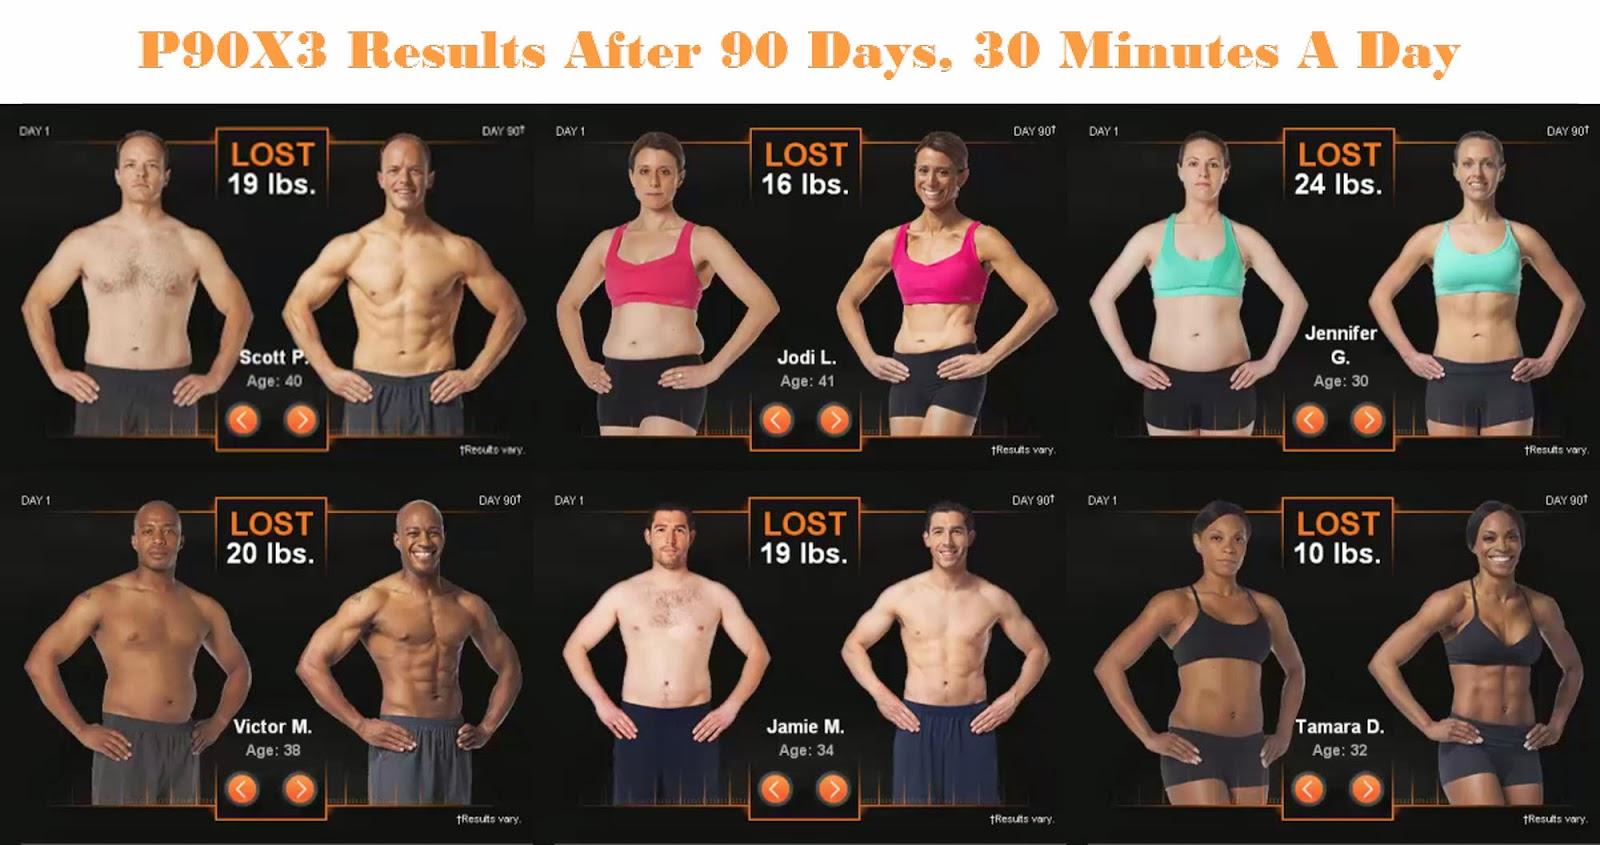 A Fit Nurse Everything You Need To Know About P90x3